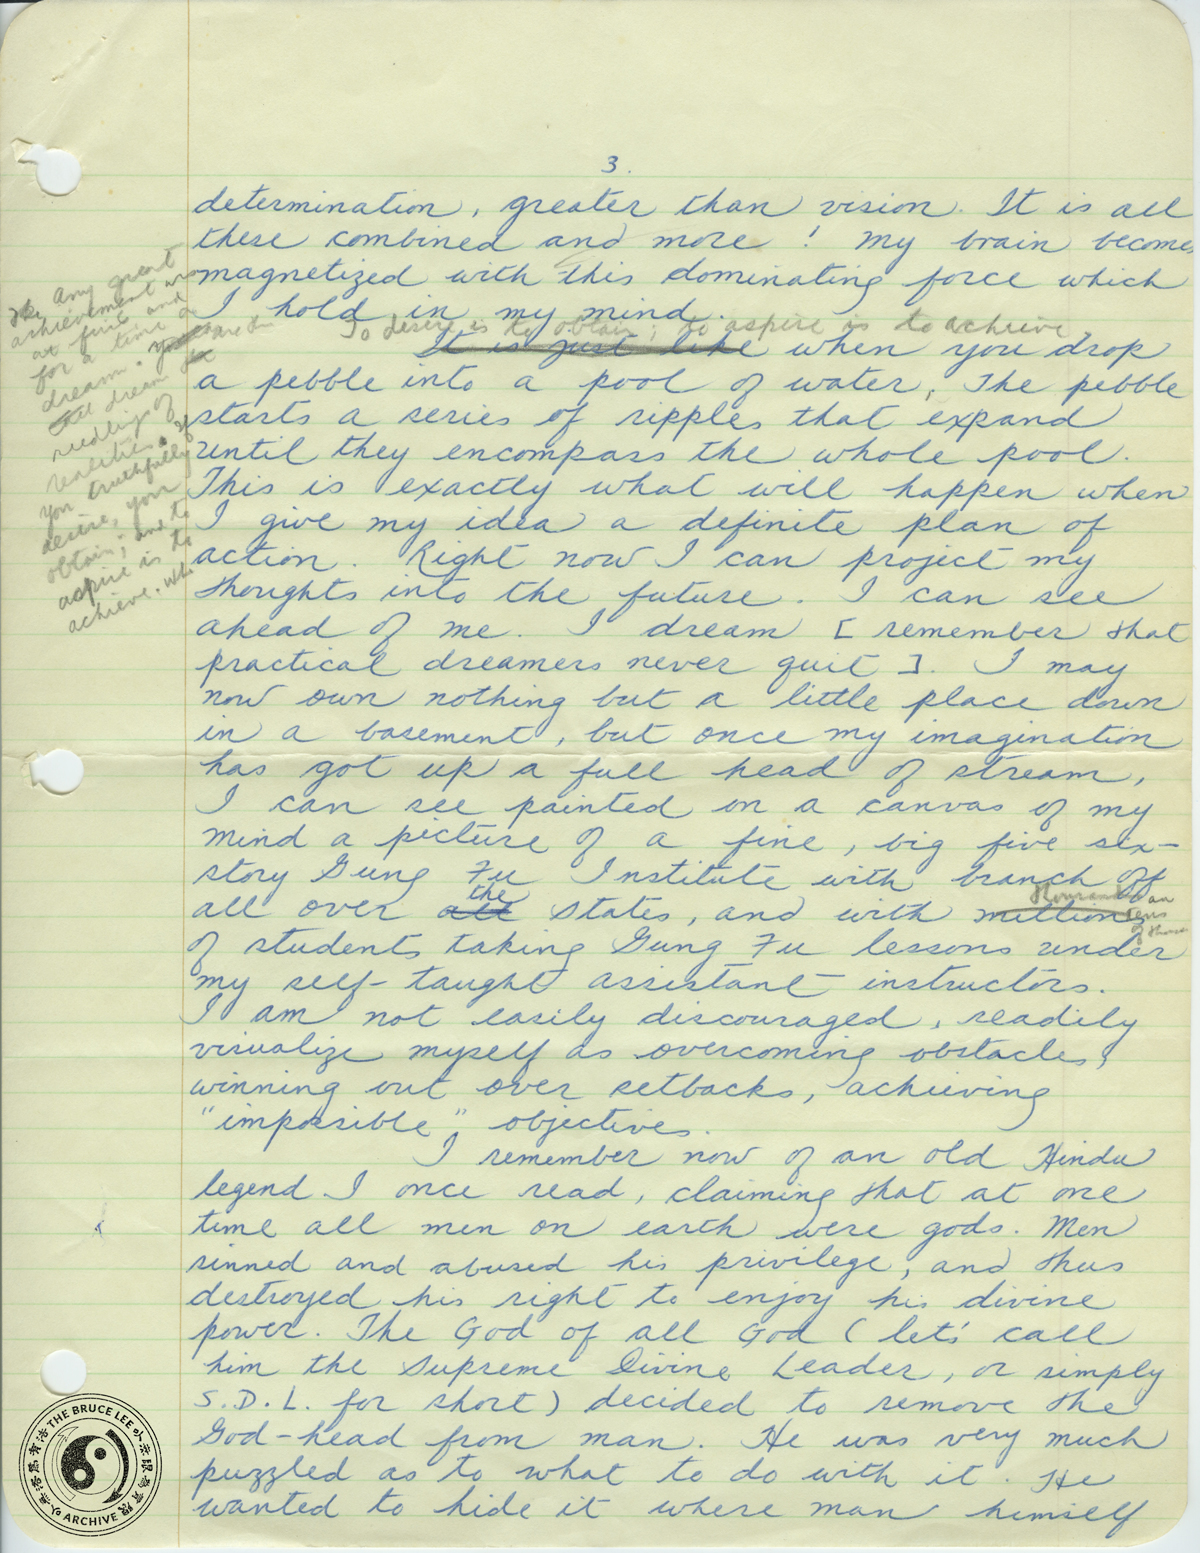 Letter-to-Pearl-draft-pg.3-archive.jpg